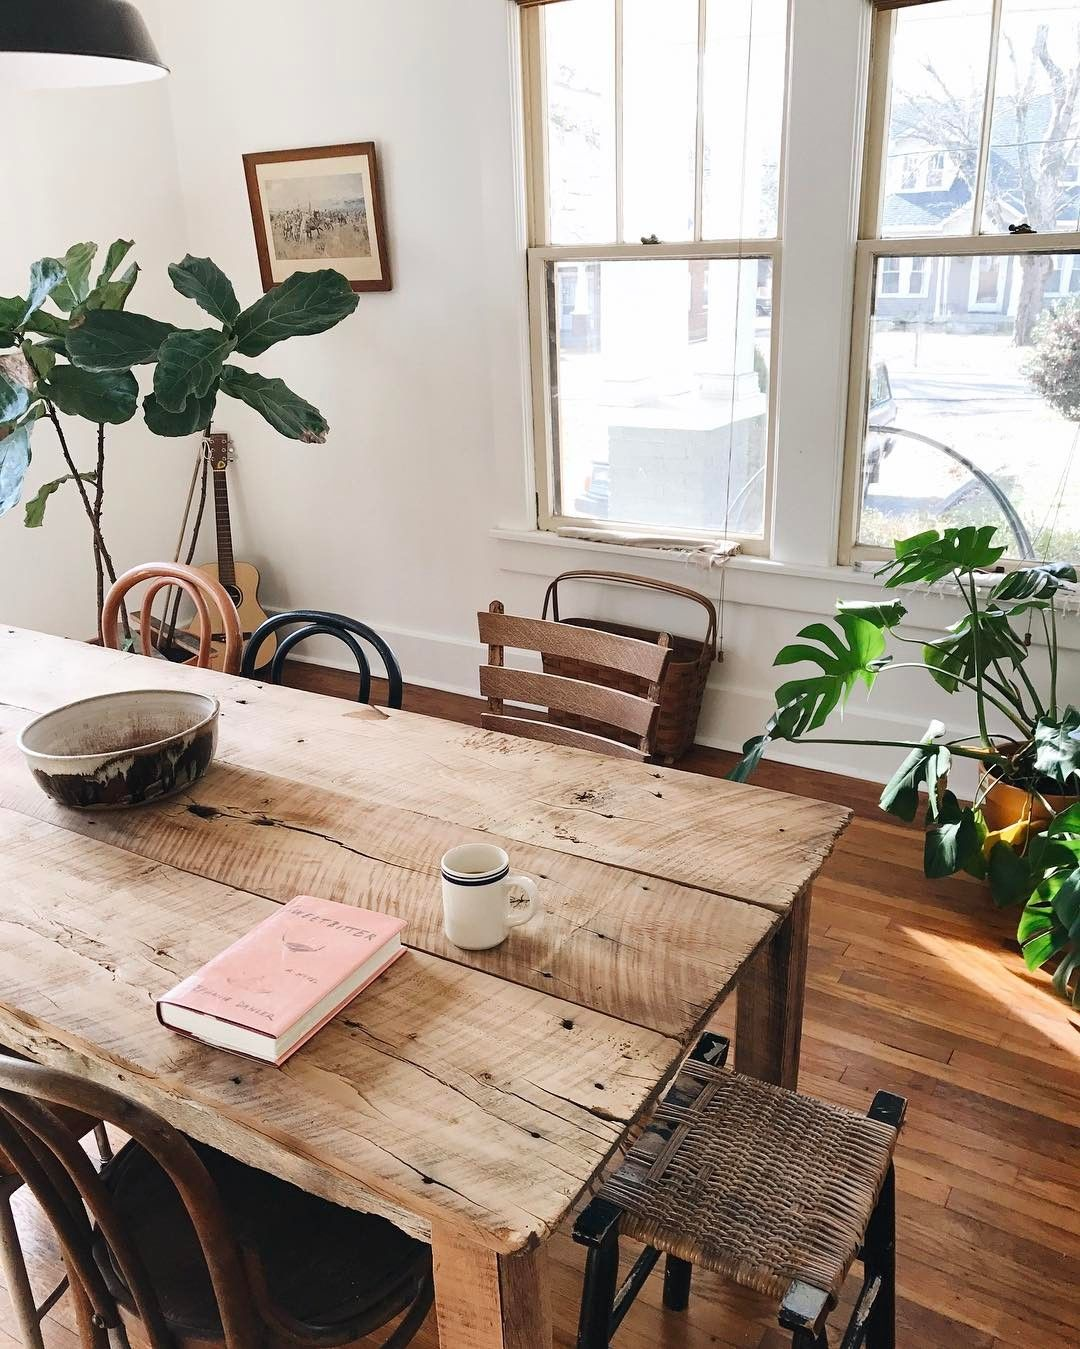 17 Rustic Wood Dining Tables For Your Farmhouse Space